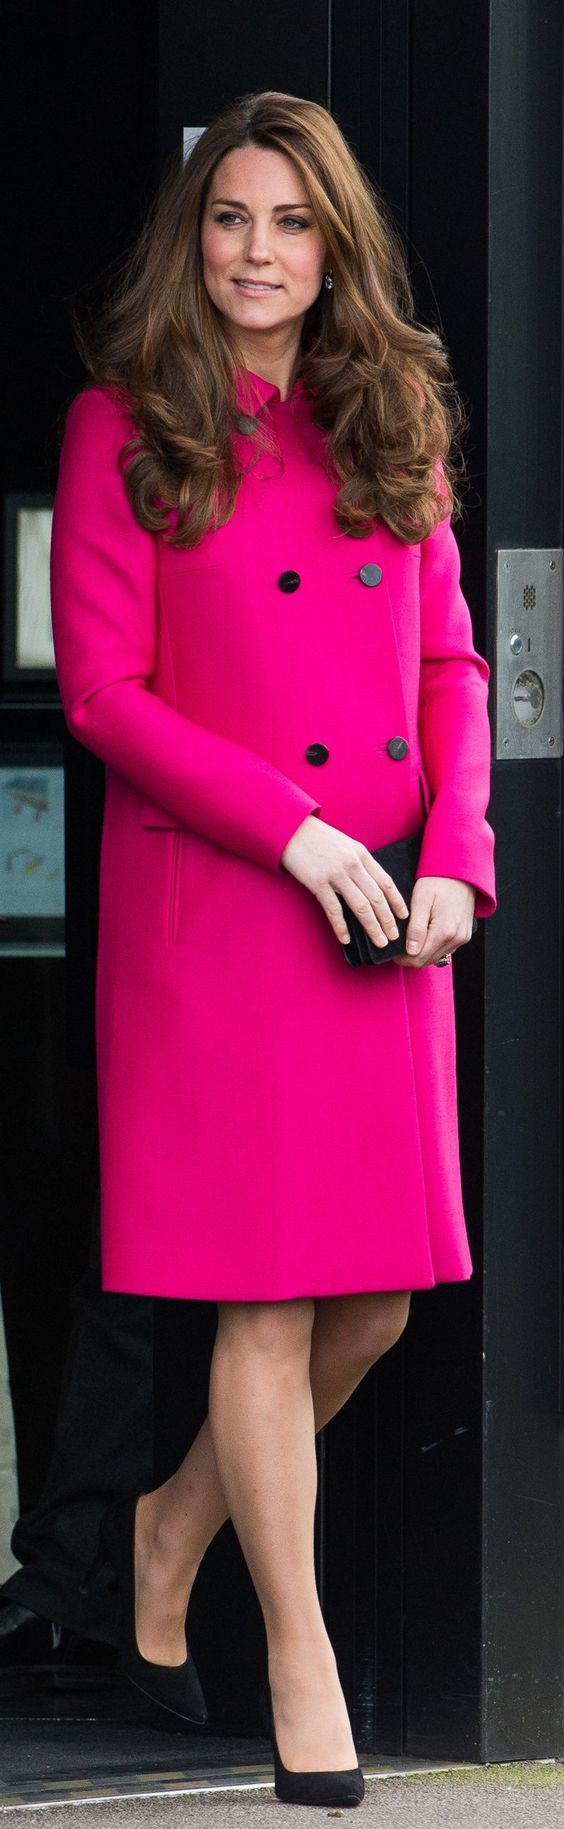 Pin for Later: Is Kate Middleton Trying to Tell Us Something With Her Hot-Pink Coat?